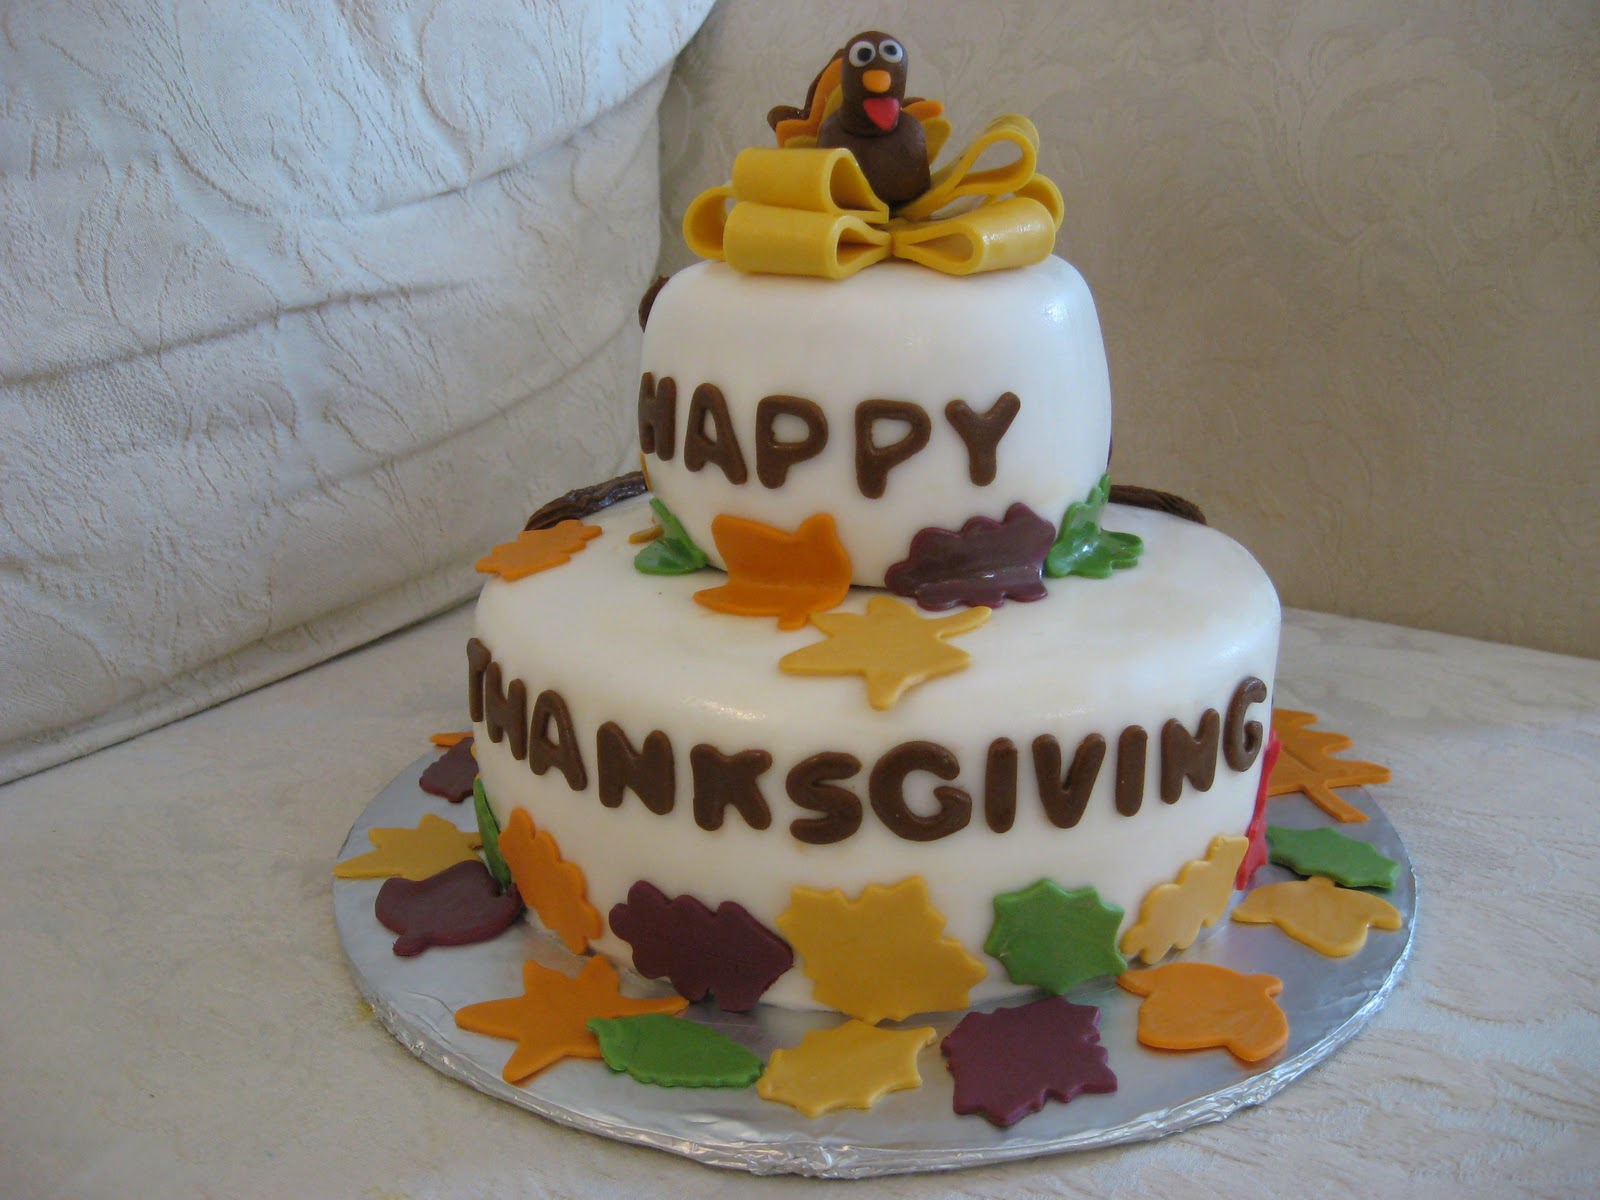 Thanksgiving Cakes     Decoration Ideas   Little Birthday Cakes Thanksgiving Cake Decorating Ideas